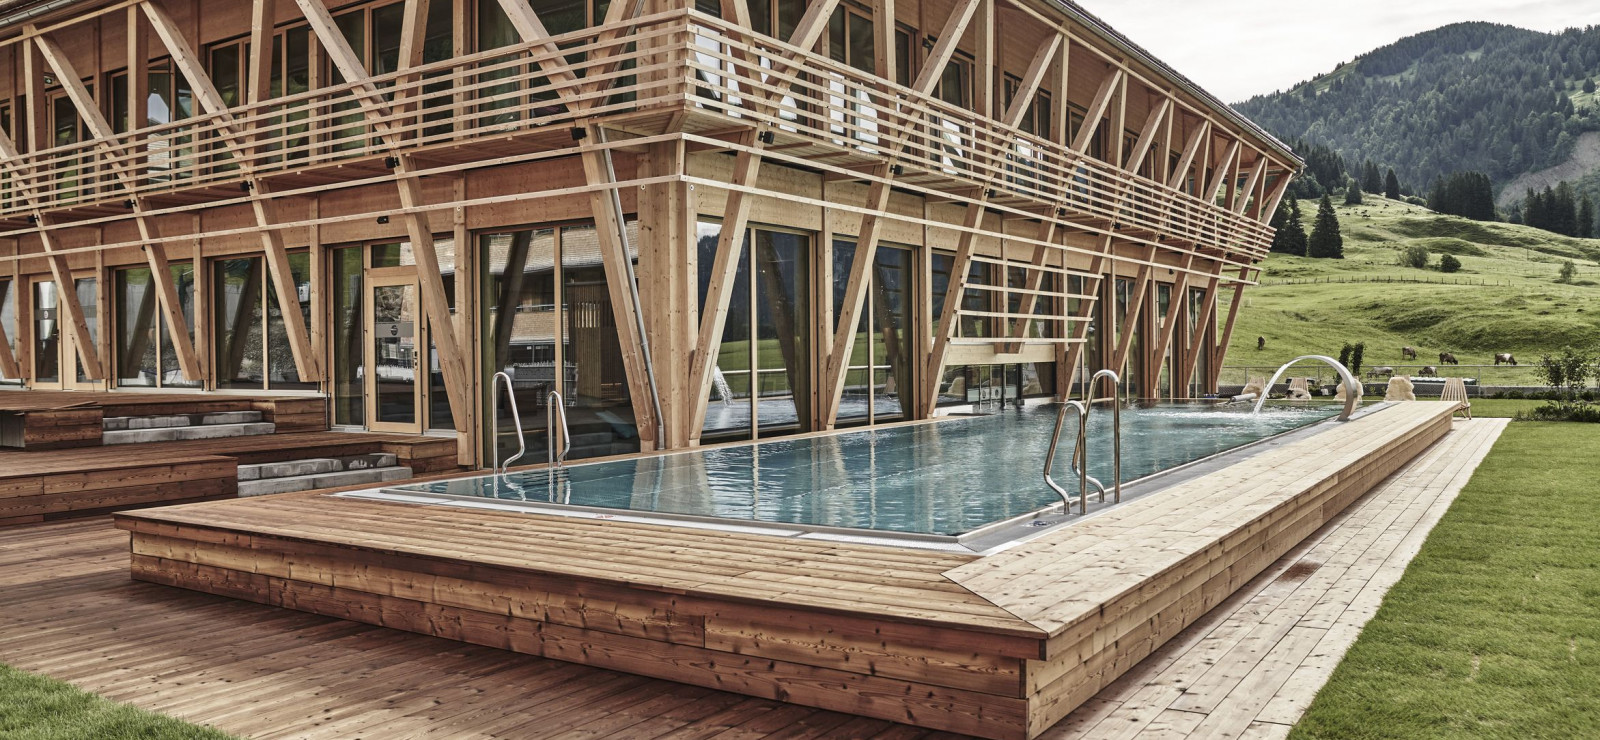 HUBERTUS Alpin Lodge & Spa Bilder | Bild 1